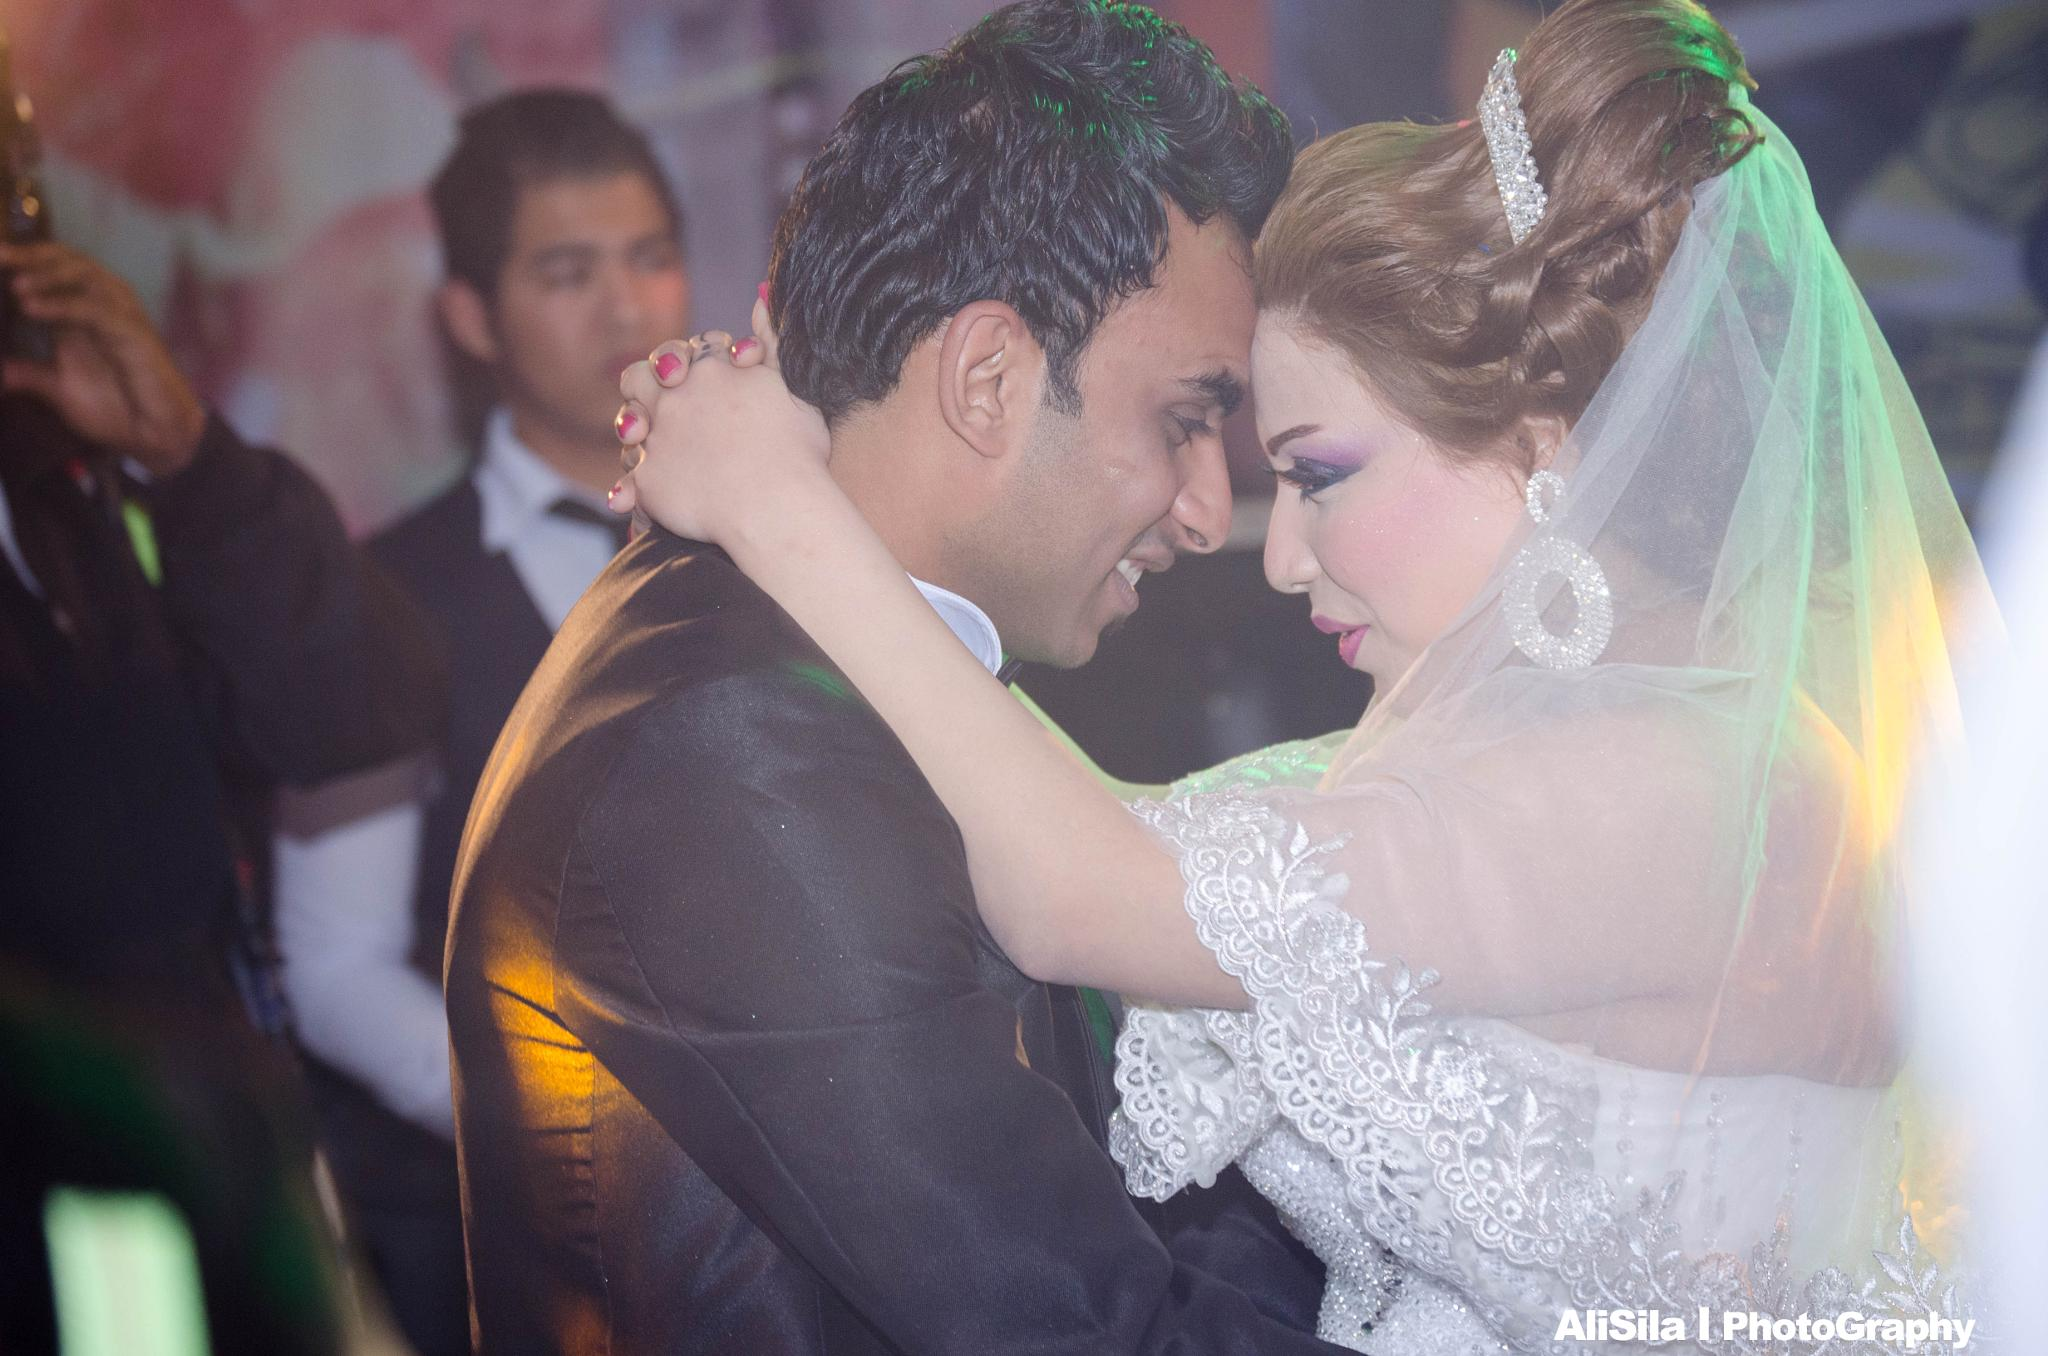 Ahmed & E by AliSila PhotoGraphy